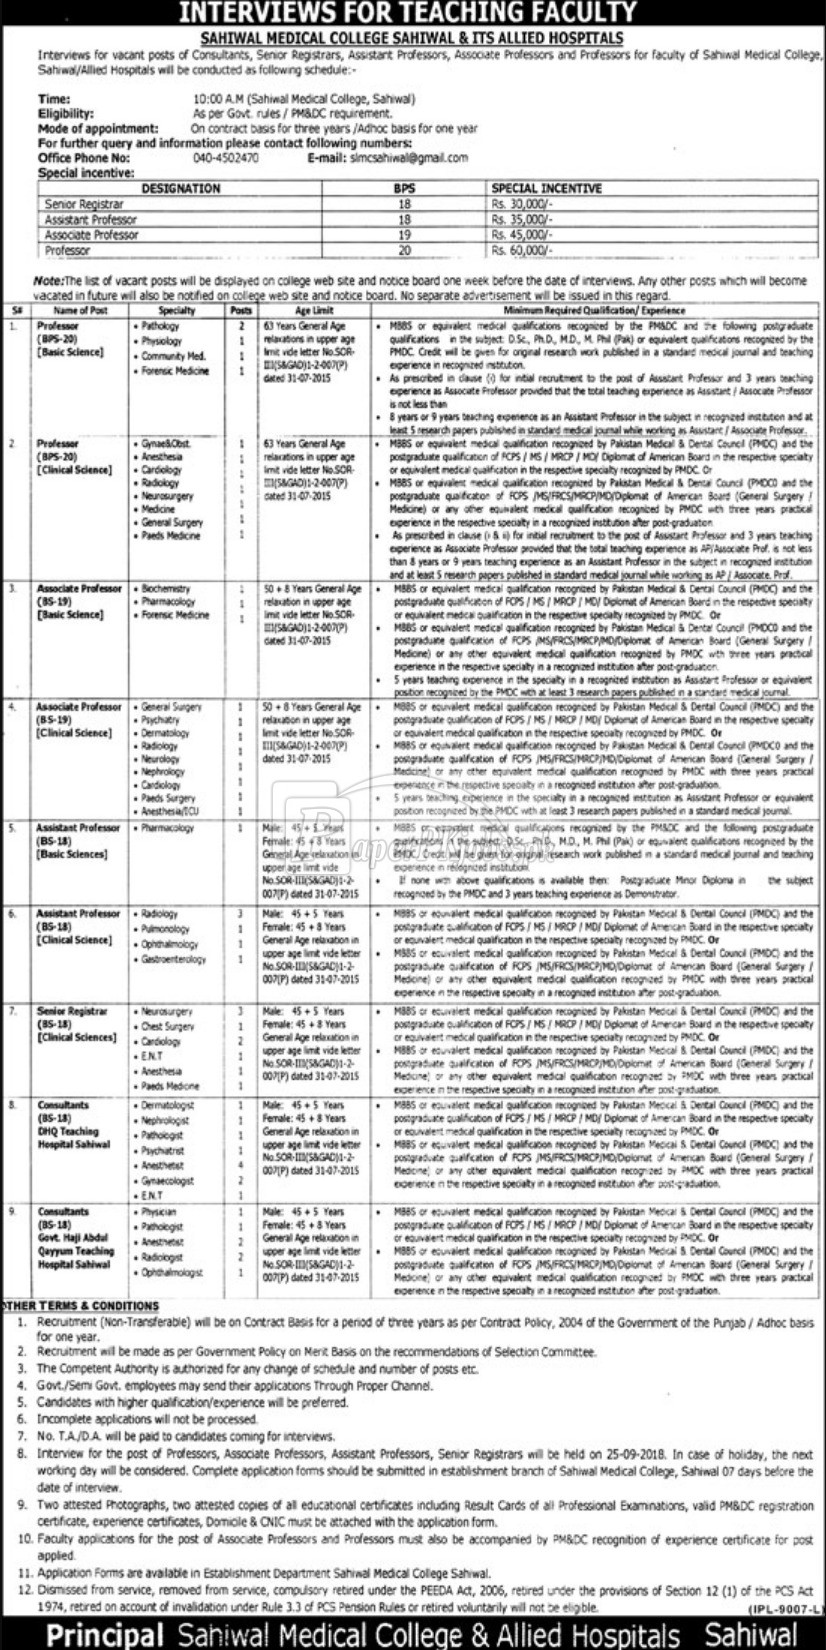 Sahiwal Medical College Sahiwal & Allied Hospitals Jobs 2018